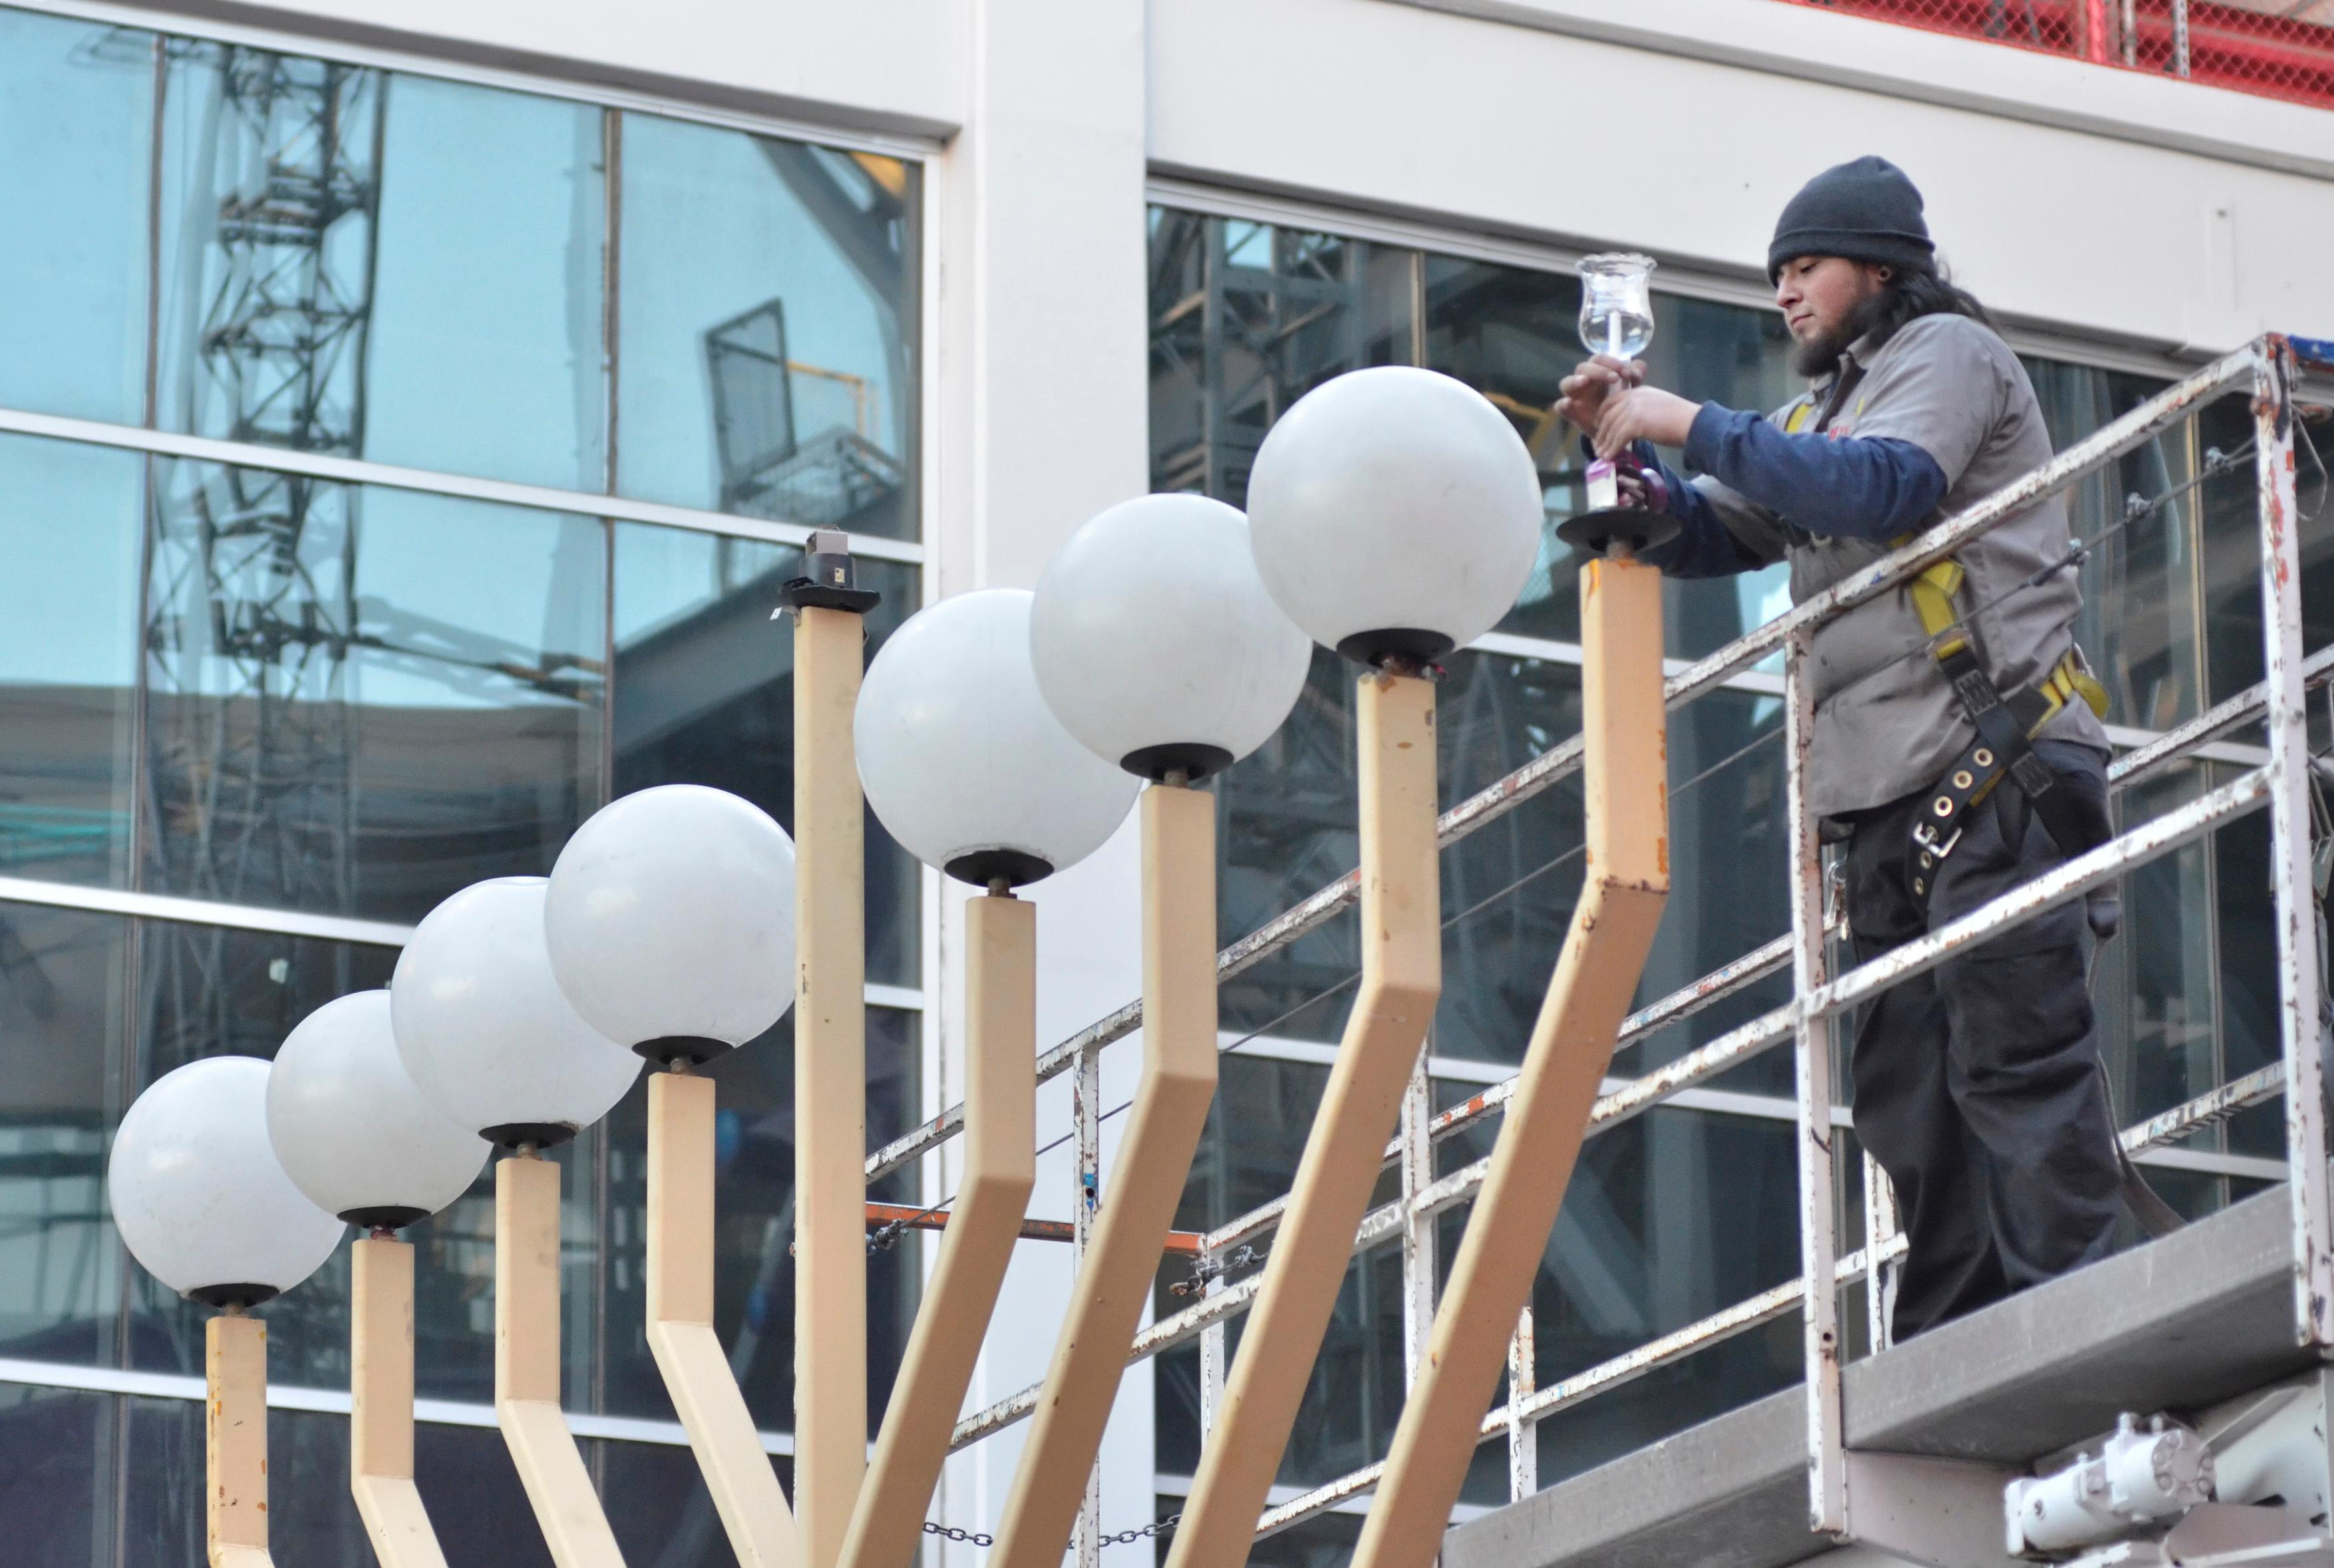 Brandon Escobar, a service technician with Yesco, mounts a candle onto a giant menorah before a lighting ceremony. Rabbi Shea Harlig, of the Chabad Jewish Center of Southern Nevada, Las Vegas Mayor Carolyn Goodman, Jonathan Jossel, CEO of the Plaza hotel-casino, and Patrick Hughes, President and CEO of Fremont Street Experience, were on hand for the first night of Hanukkah which was marked with the lighting of a 20-foot Grand Menorah on Fremont Street in downtown Las Vegas on Tuesday, Dec. 12, 2017. CREDIT: Bill Hughes/Las Vegas News Bureau